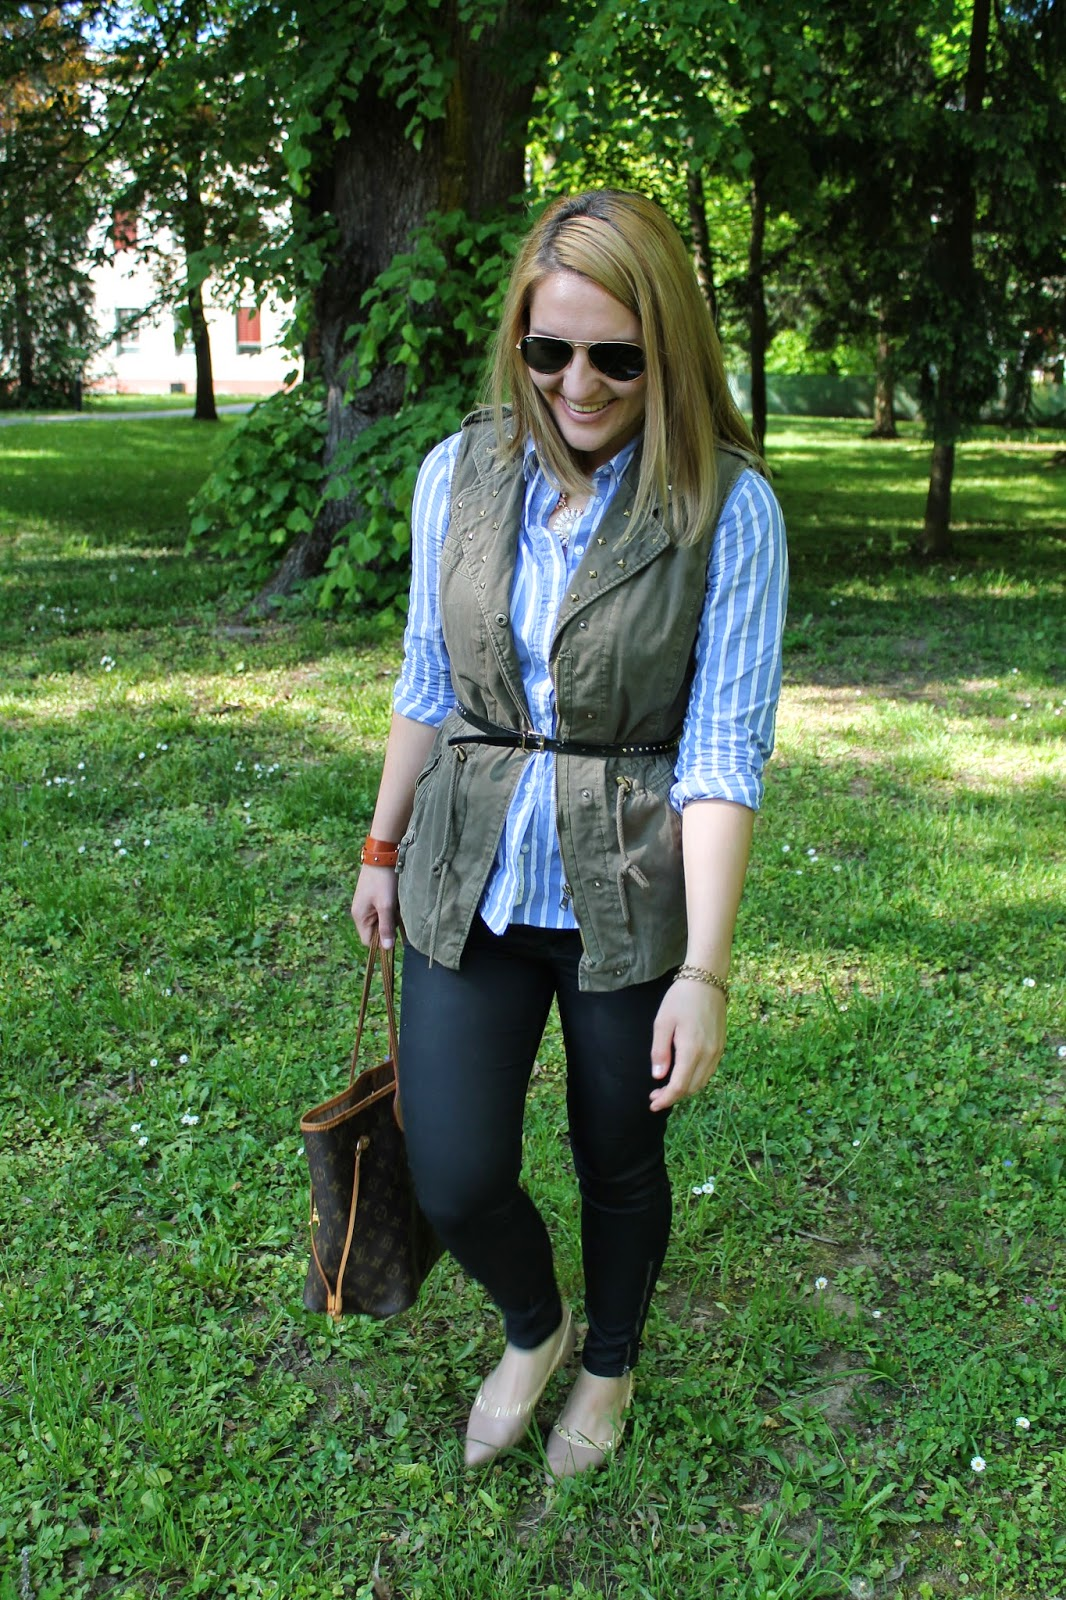 Fashionblogger Austria / Österreich / Deutsch / German / Kärnten / Carinthia / Klagenfurt / Köttmannsdorf / Spring Look / Classy / Edgy / Preppy / H&M / Takko / Louis Vuitton / Forever 21 / Ray Ban / Aviator / Blouse /Waxed black Skinnys/ Blue white stripped Blouse / Army Parka /